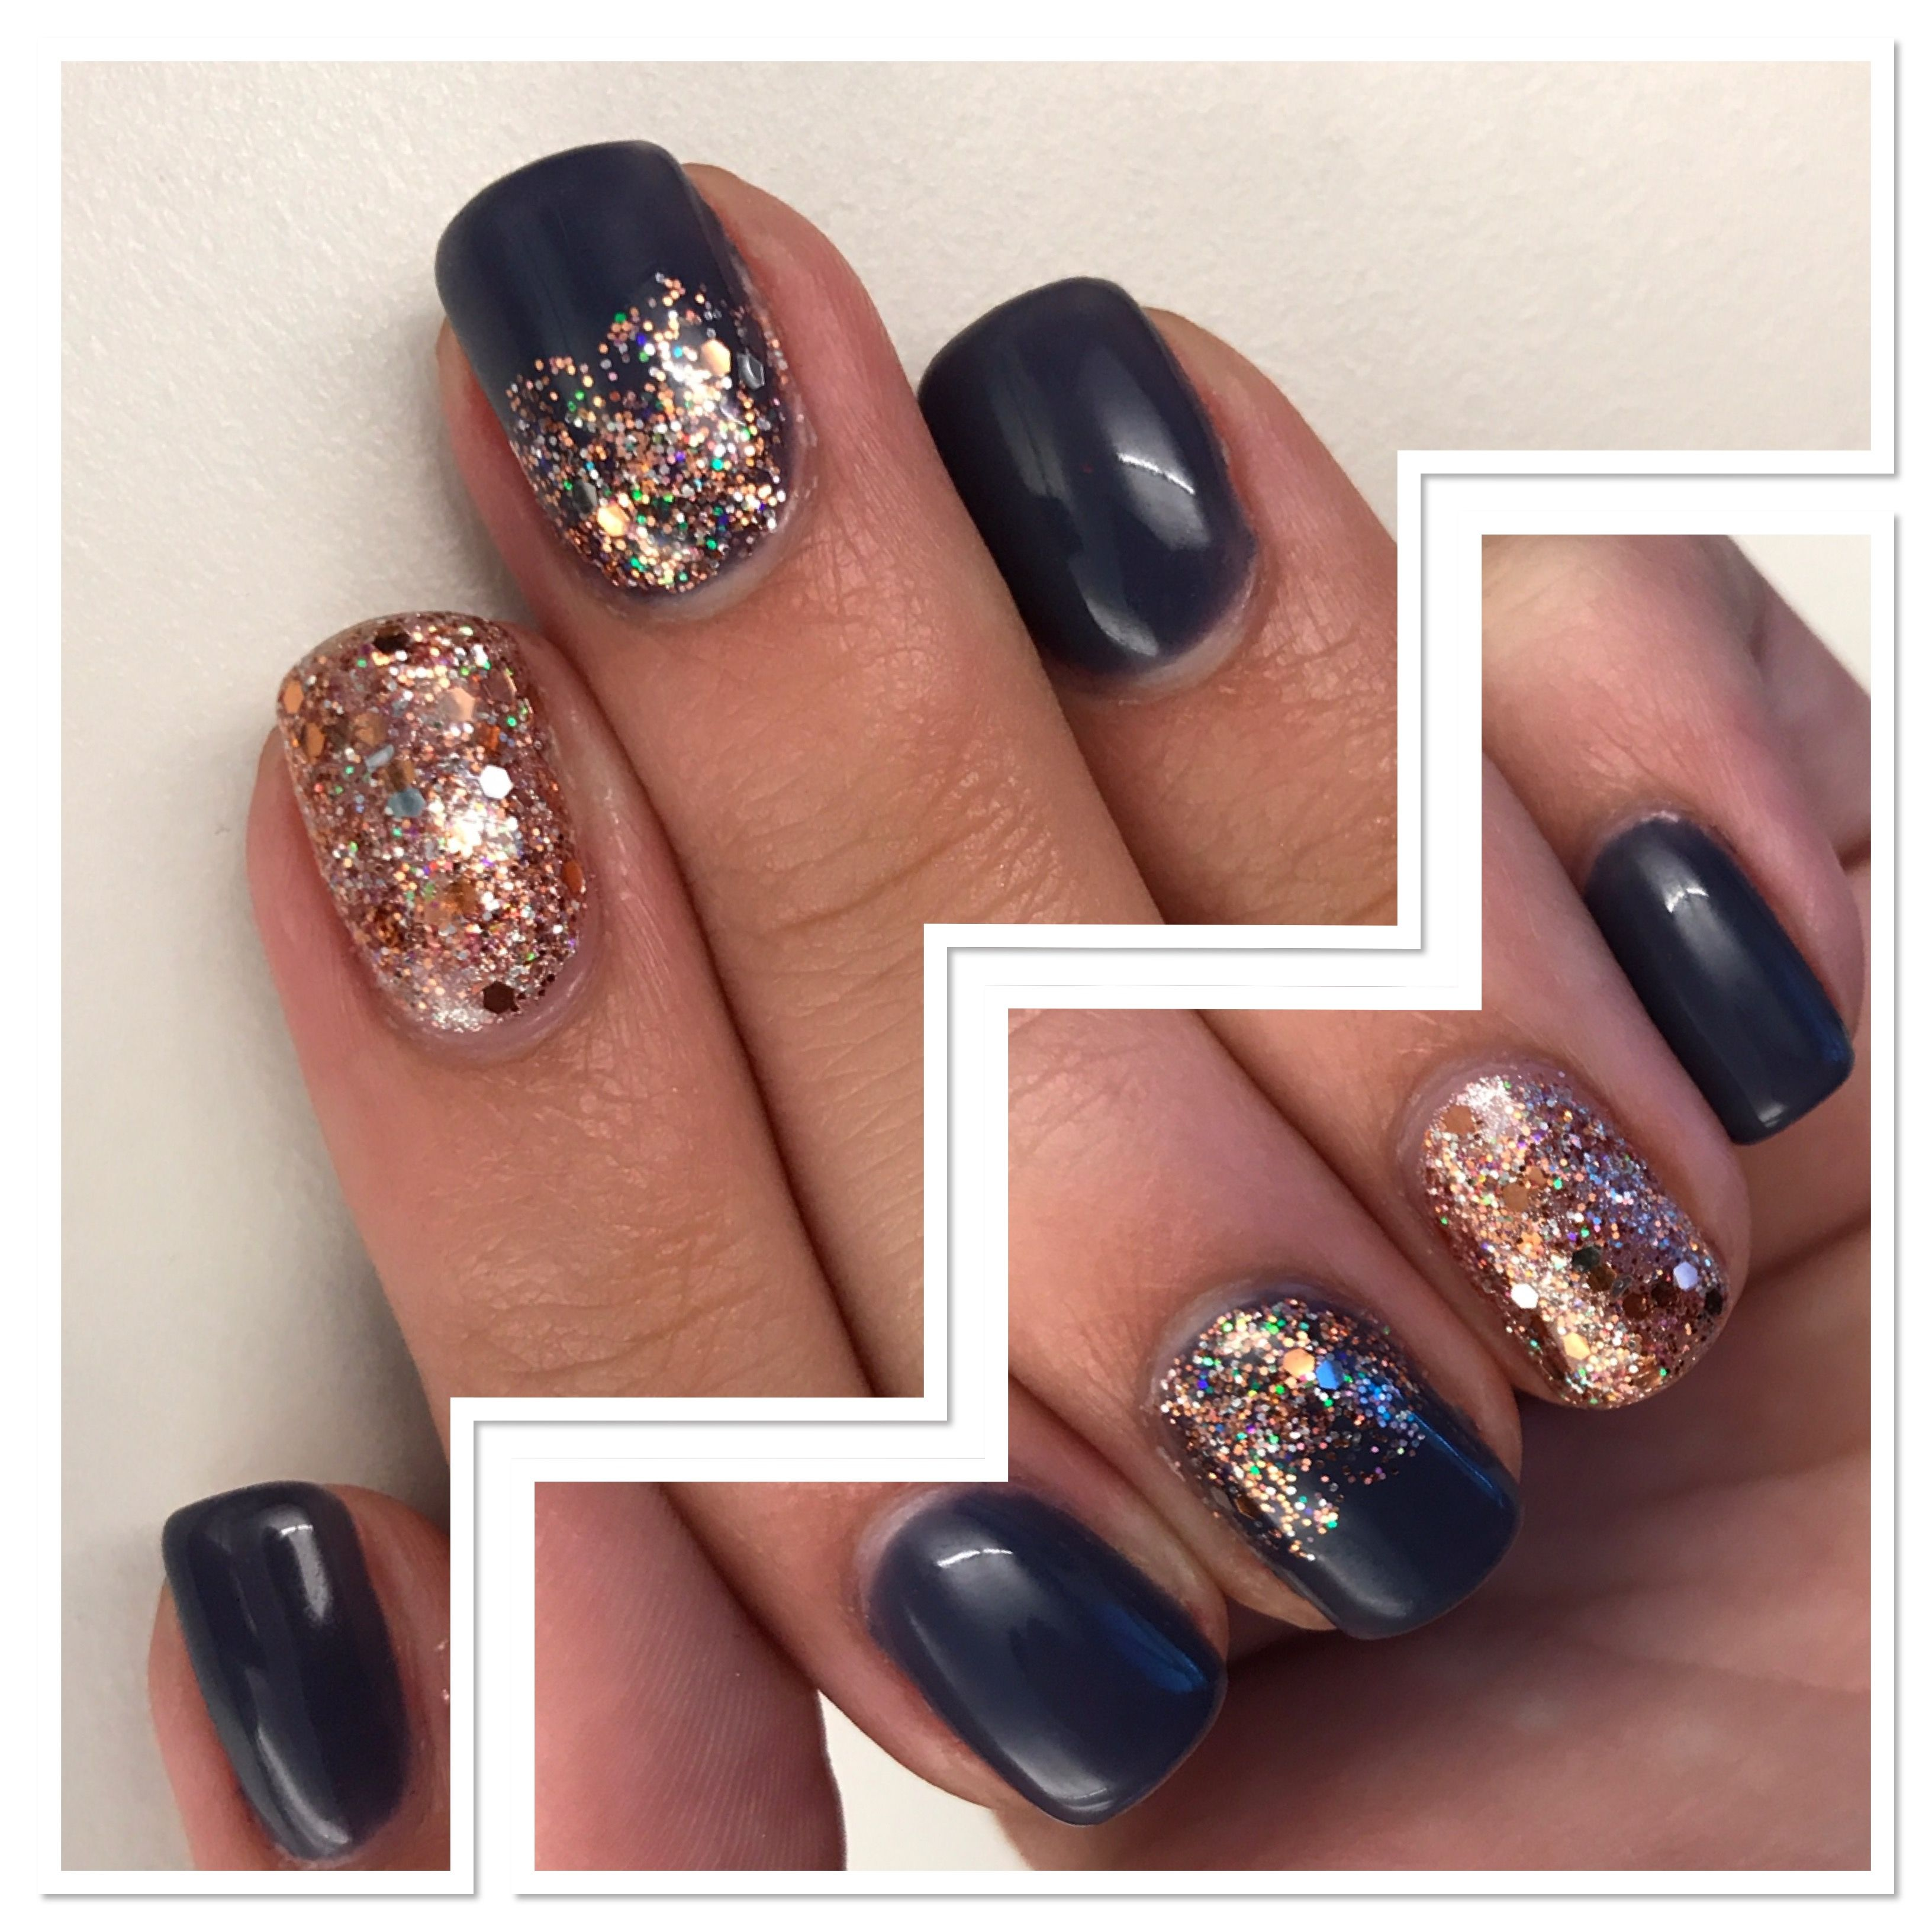 OPI Less is Norse & Rose Gold Glitter Fall Gel Nails | Gel Nail ...